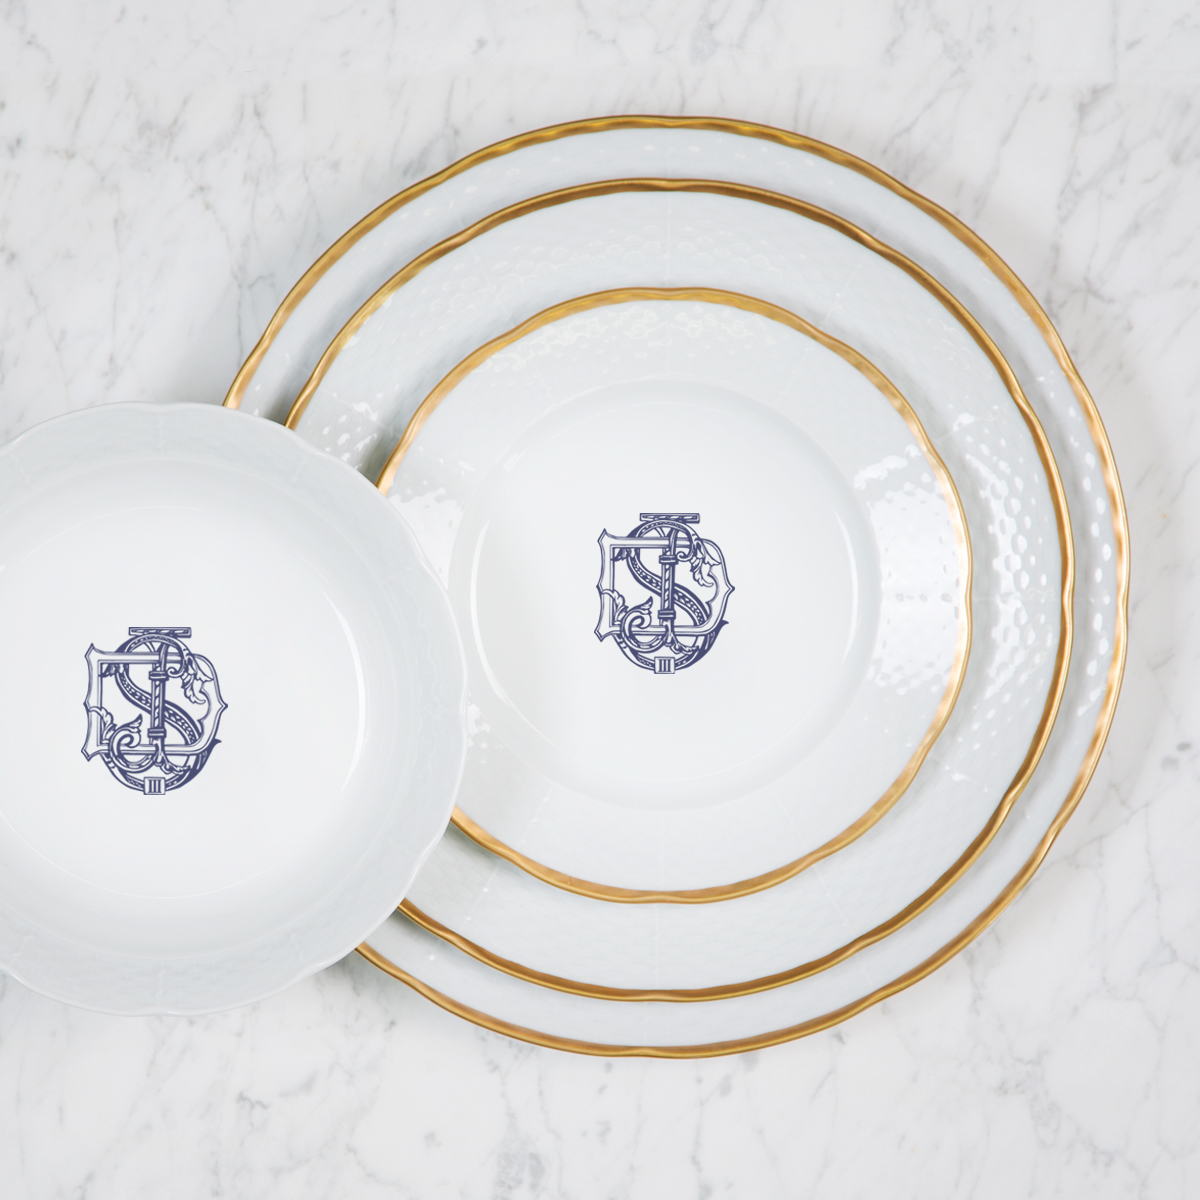 Barringhaus-Hoffmann Customer's Own Monogram Setup & Proof For Sasha Nicholas Pieces SND100